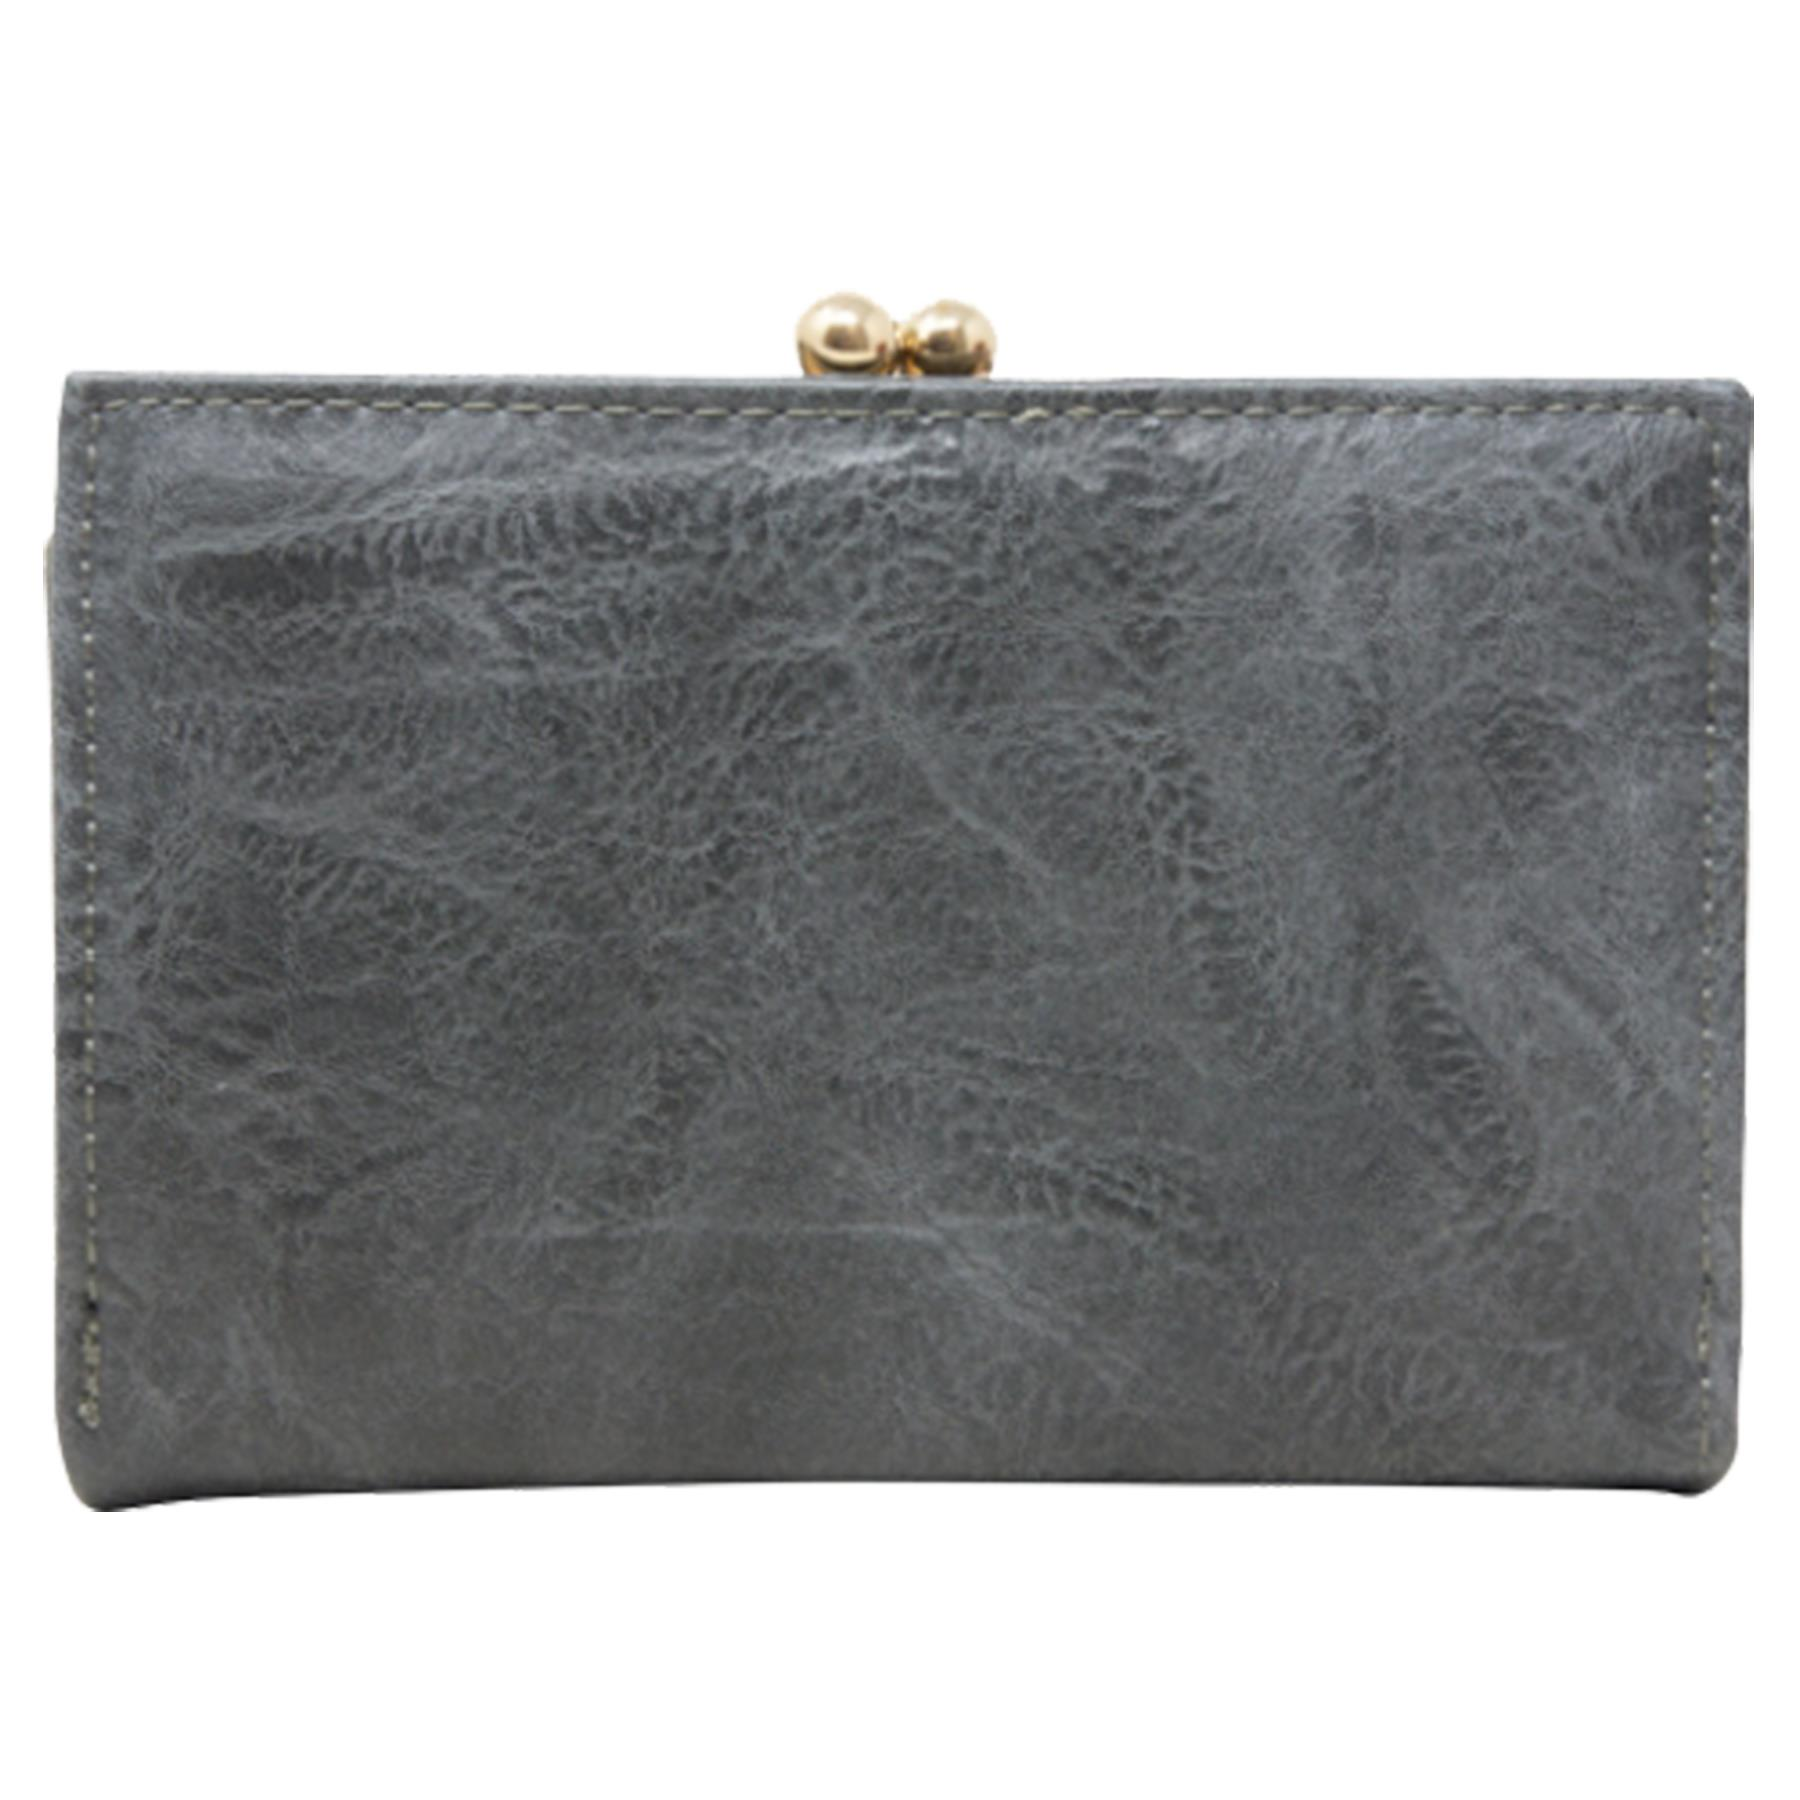 New-Synthetic-Leather-Kiss-Lock-Compartment-Ladies-Casual-Wallet-Purse thumbnail 16